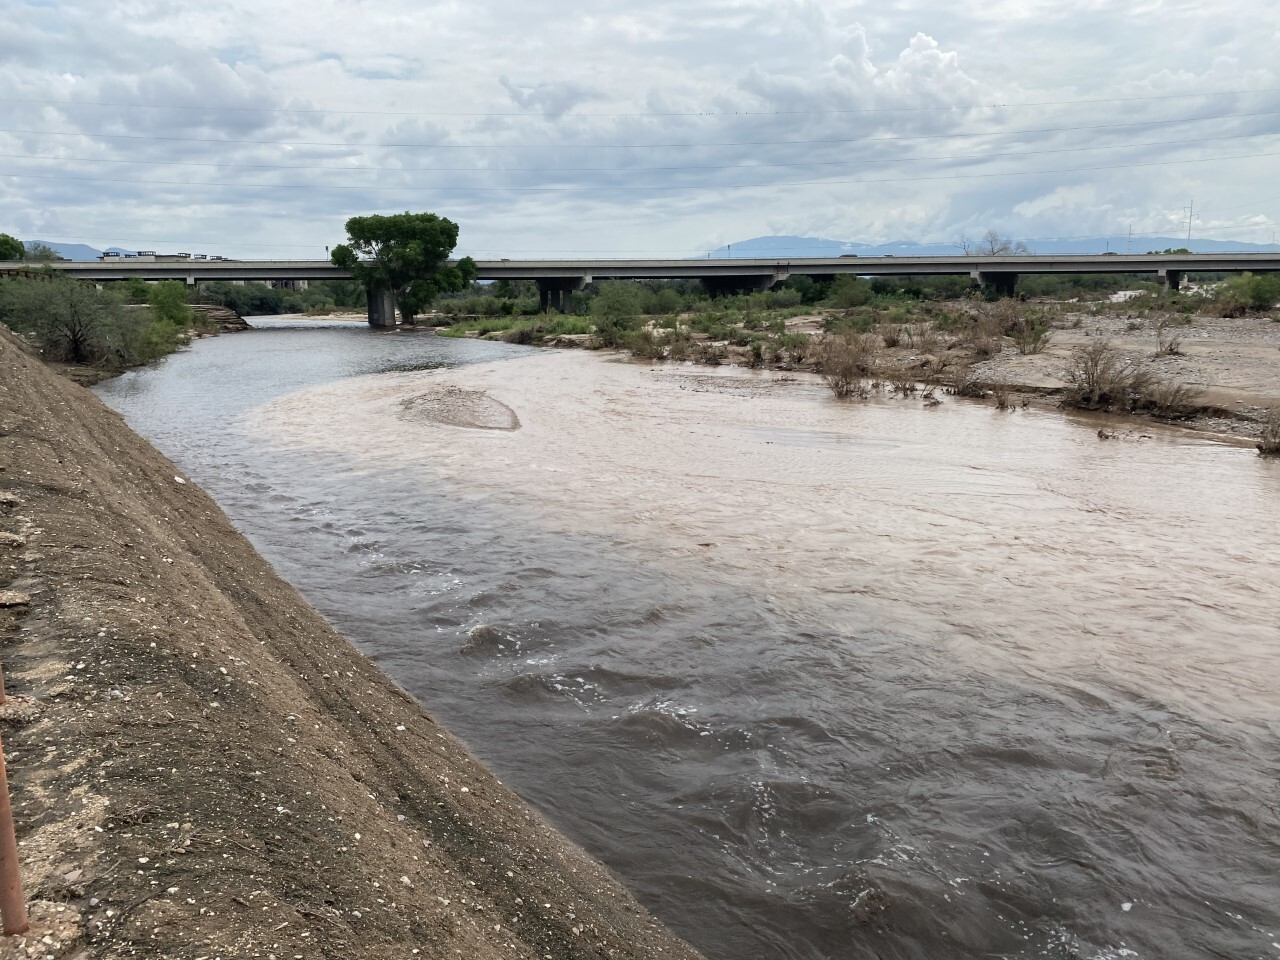 Pantano Wash and Tanque Verde Wash converge to form the Rillito River